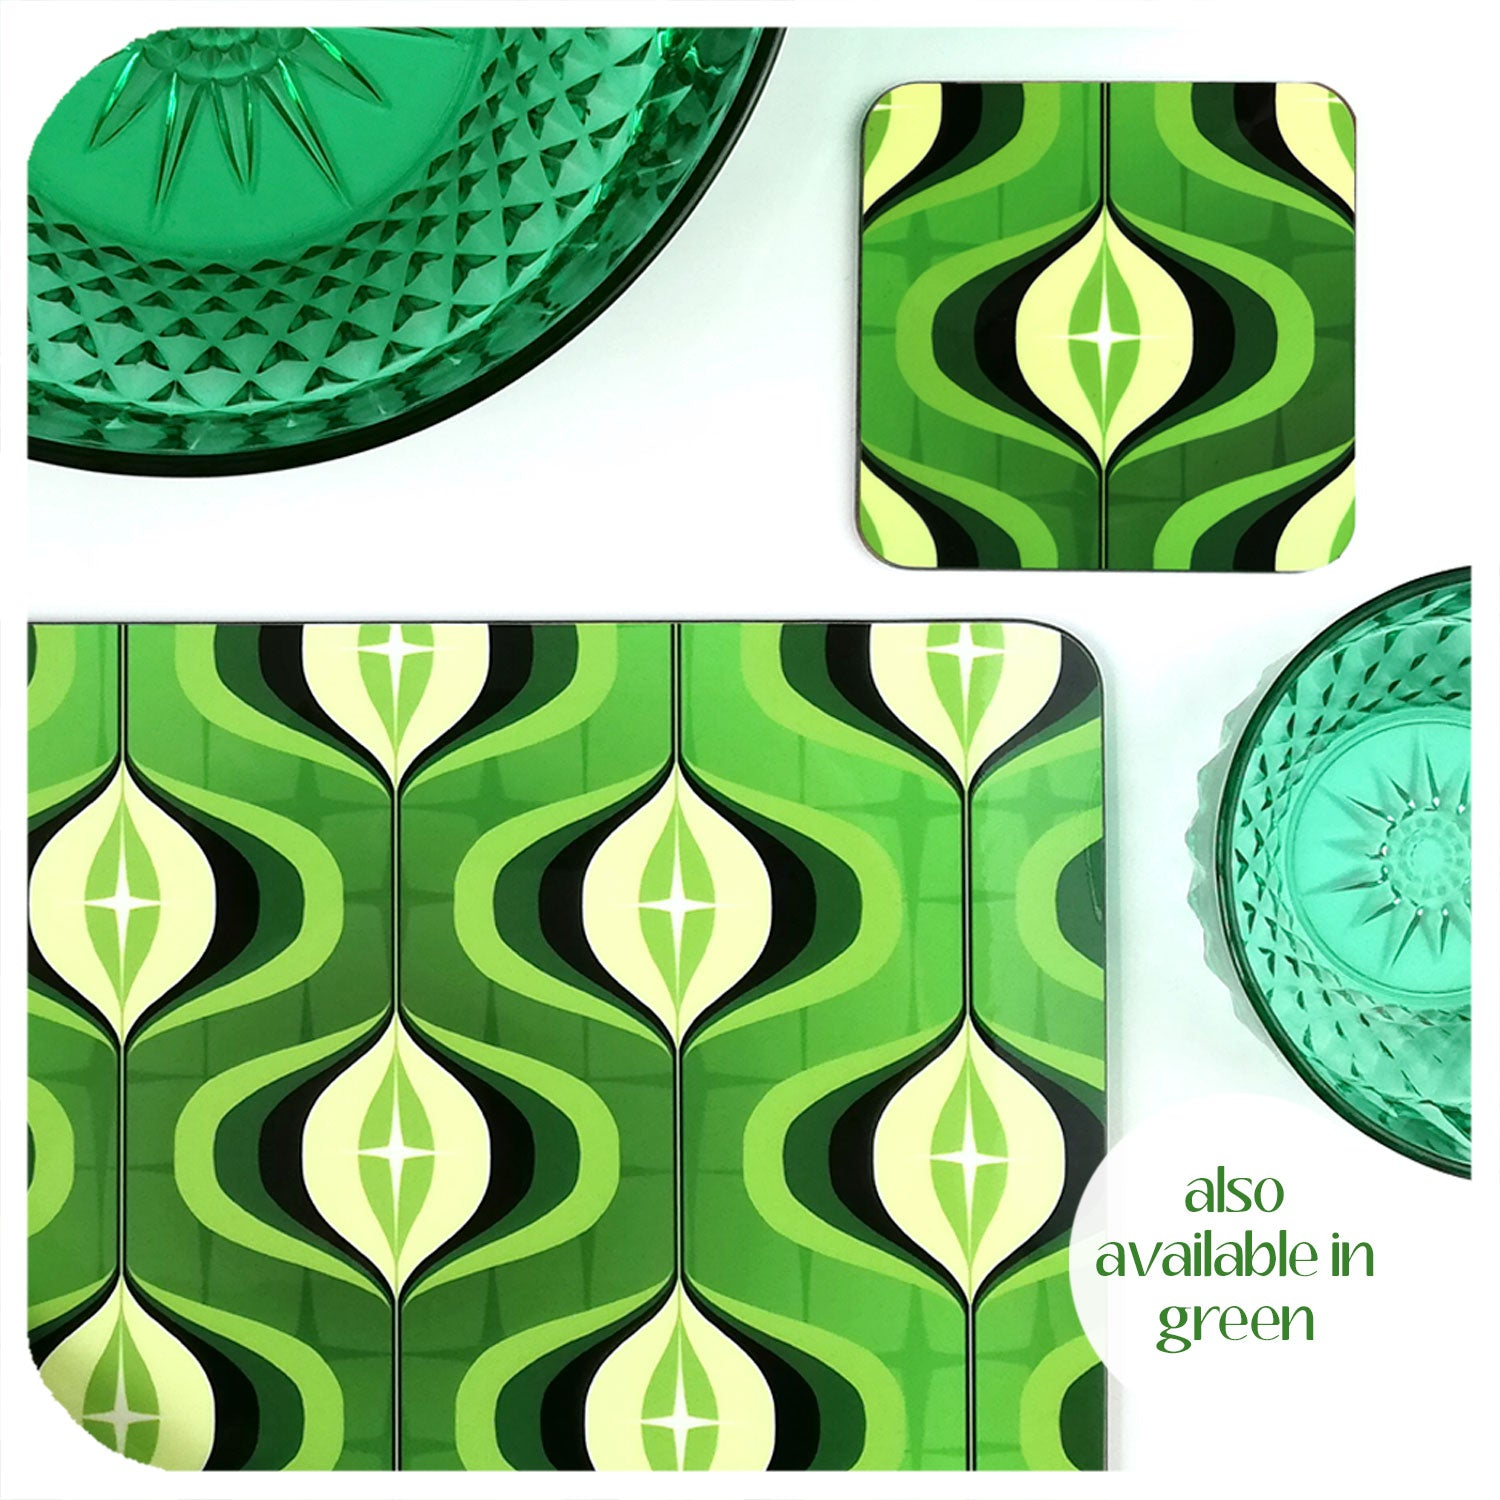 1970s Op Art Tableware also available in green | The Inkabilly Emporium